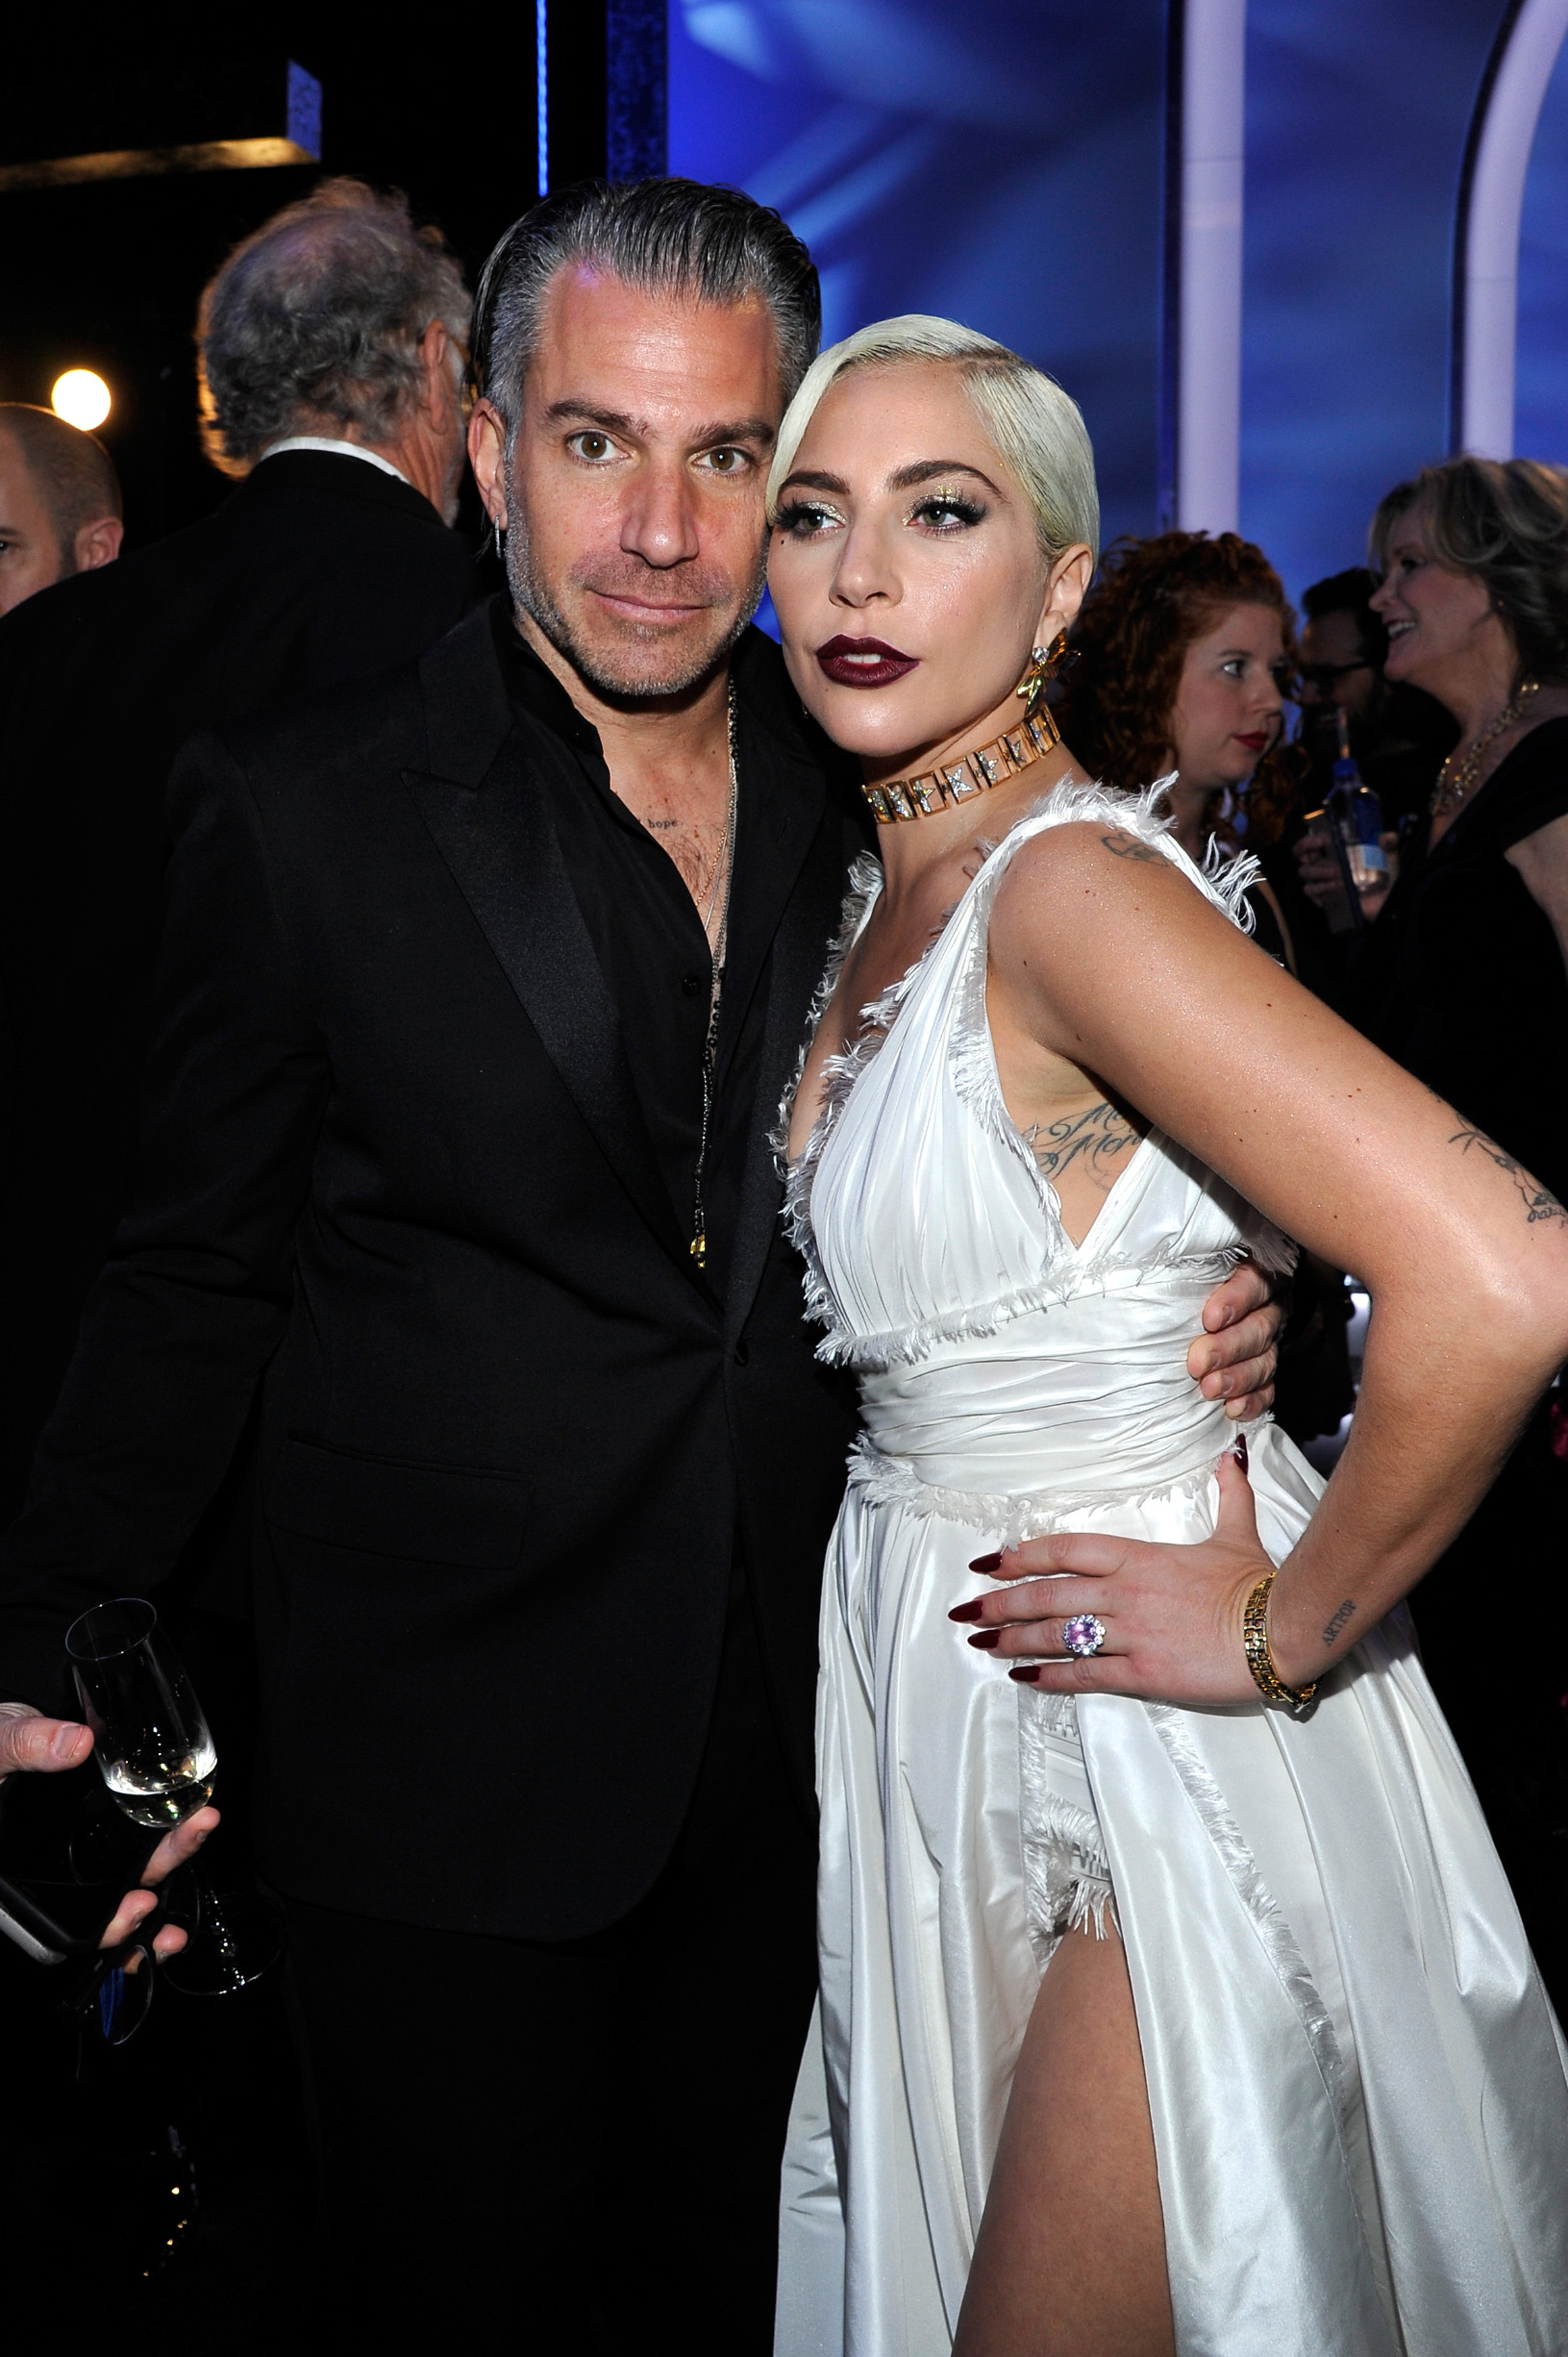 LOS ANGELES, CA - JANUARY 27:  Christian Carino (L) and Lady Gaga attend the 25th Annual Screen ActorsGuild Awards at The Shrine Auditorium on January 27, 2019 in Los Angeles, California. 480720  (Photo by John Sciulli/Getty Images for Turner)